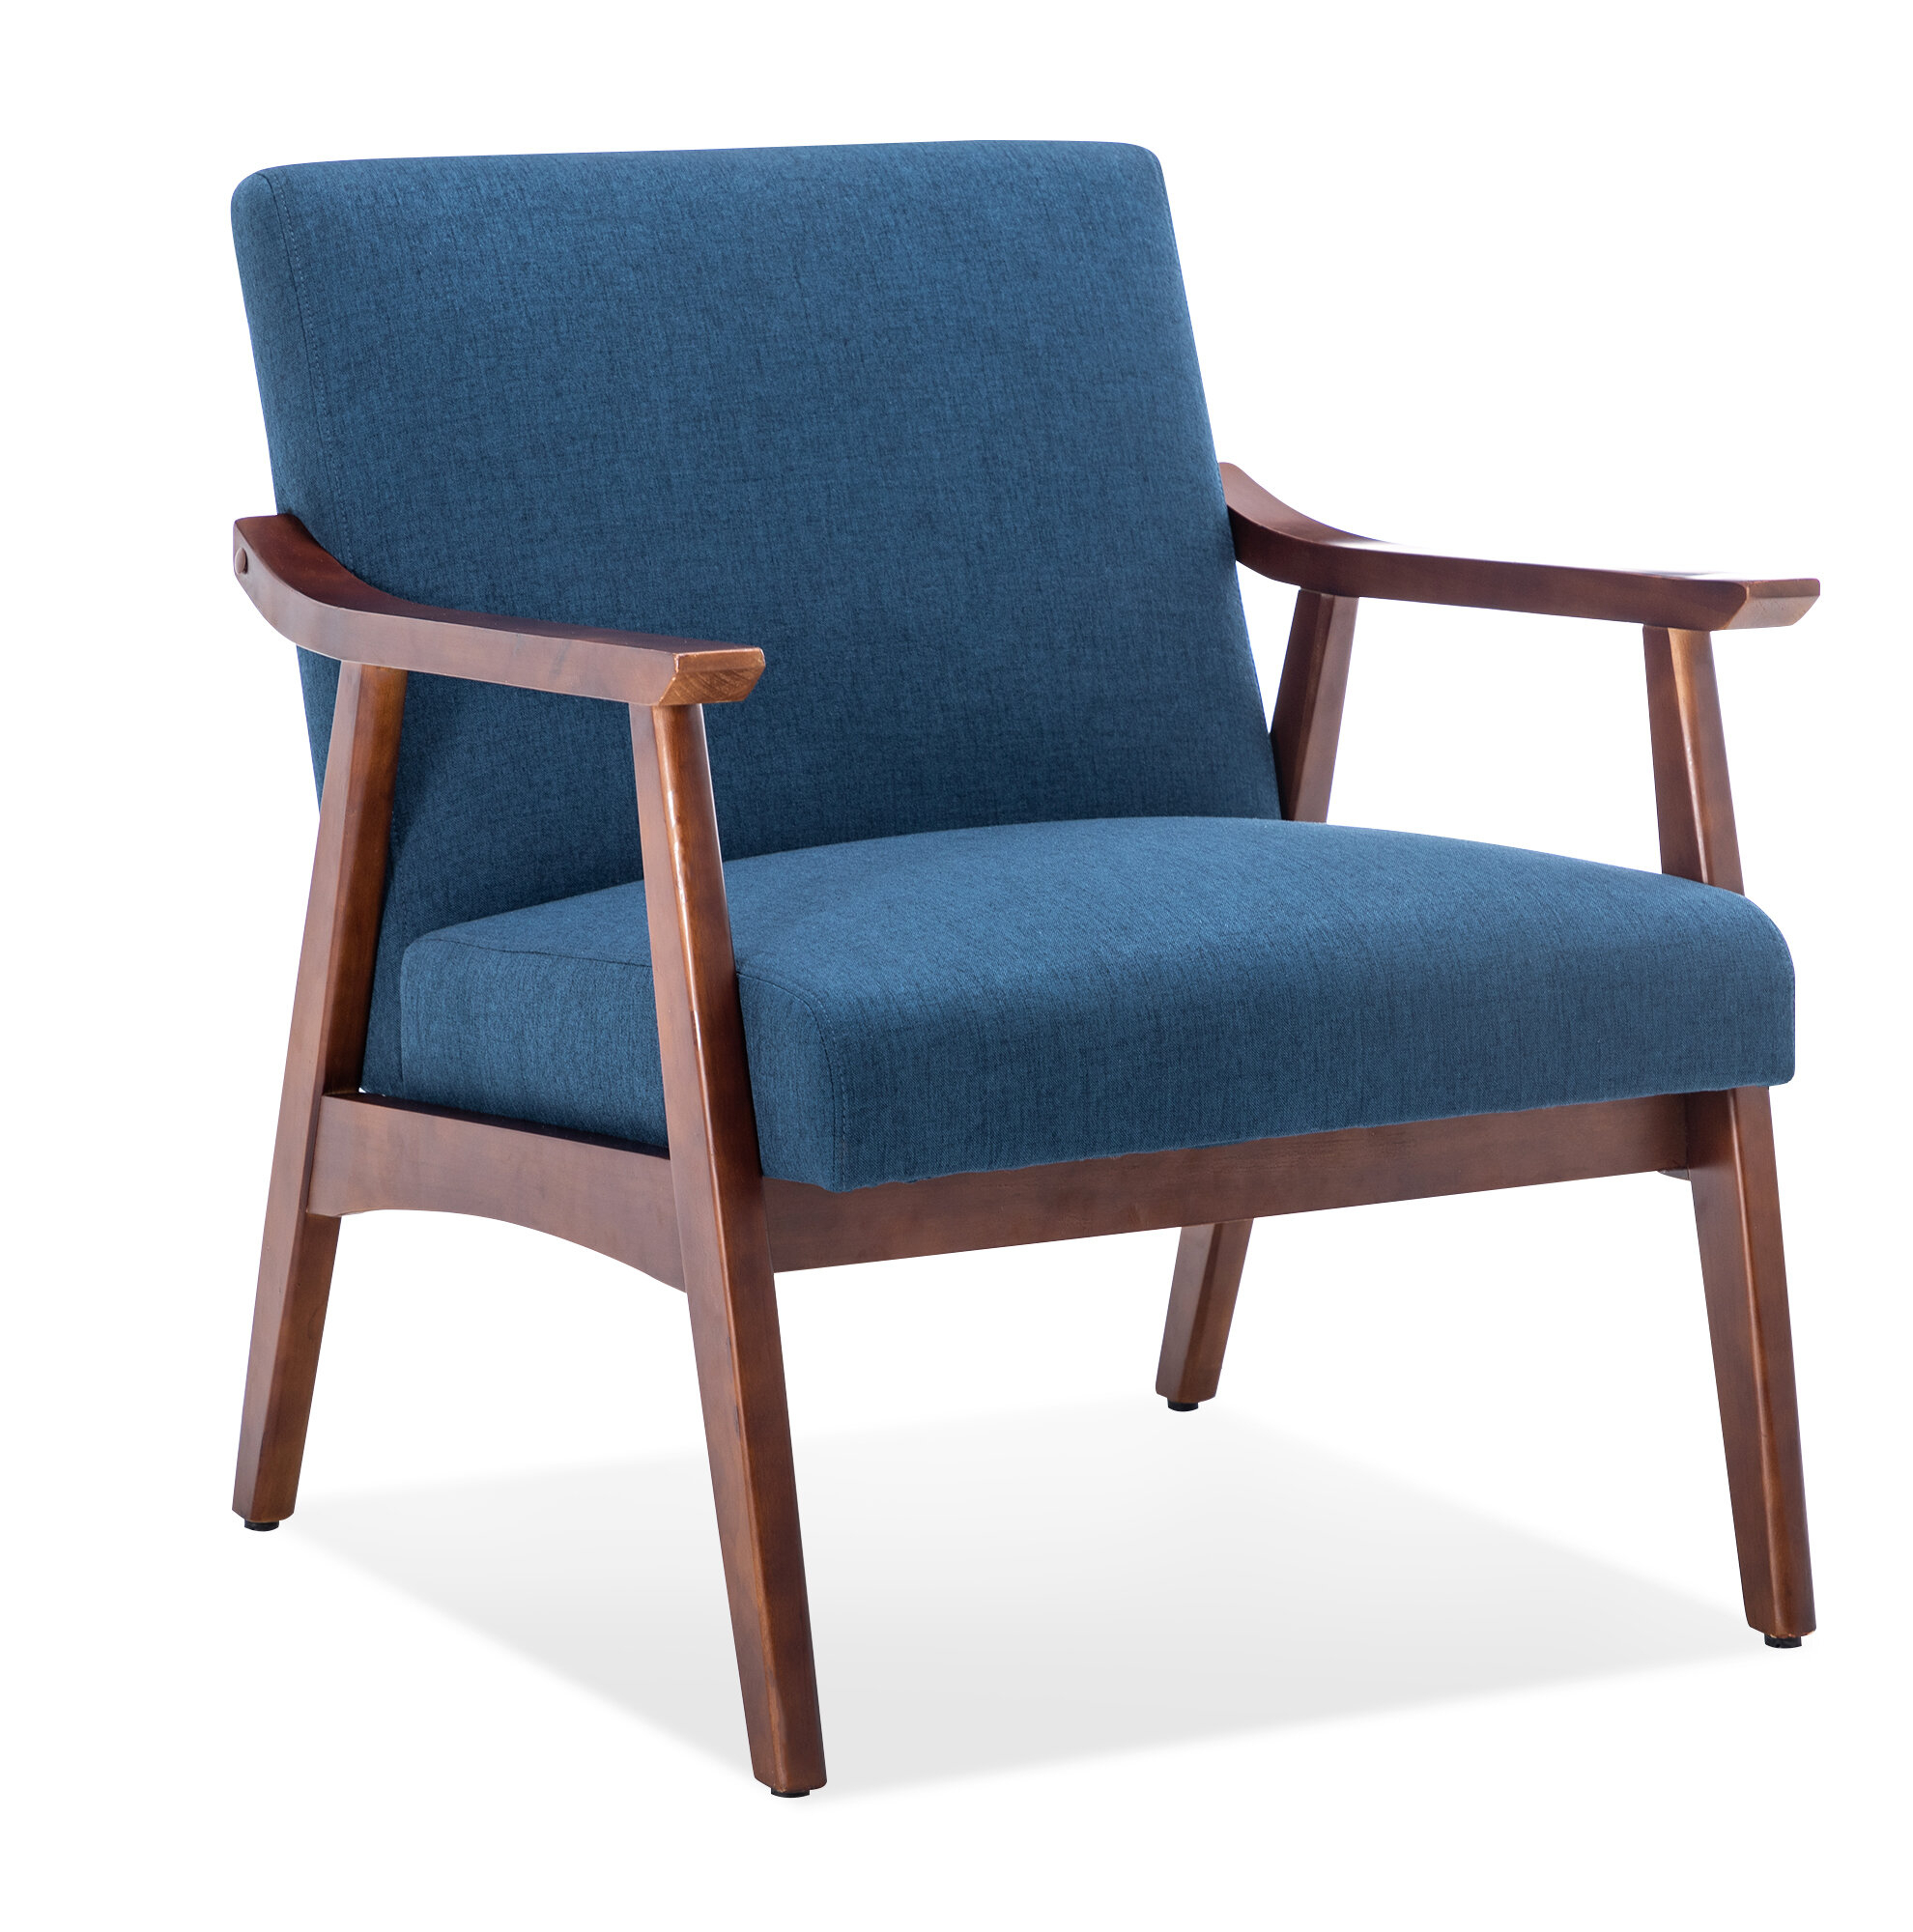 Blue & Navy Accent Chairs You'Ll Love In 2021 | Wayfair Regarding Dallin Arm Chairs (View 3 of 15)